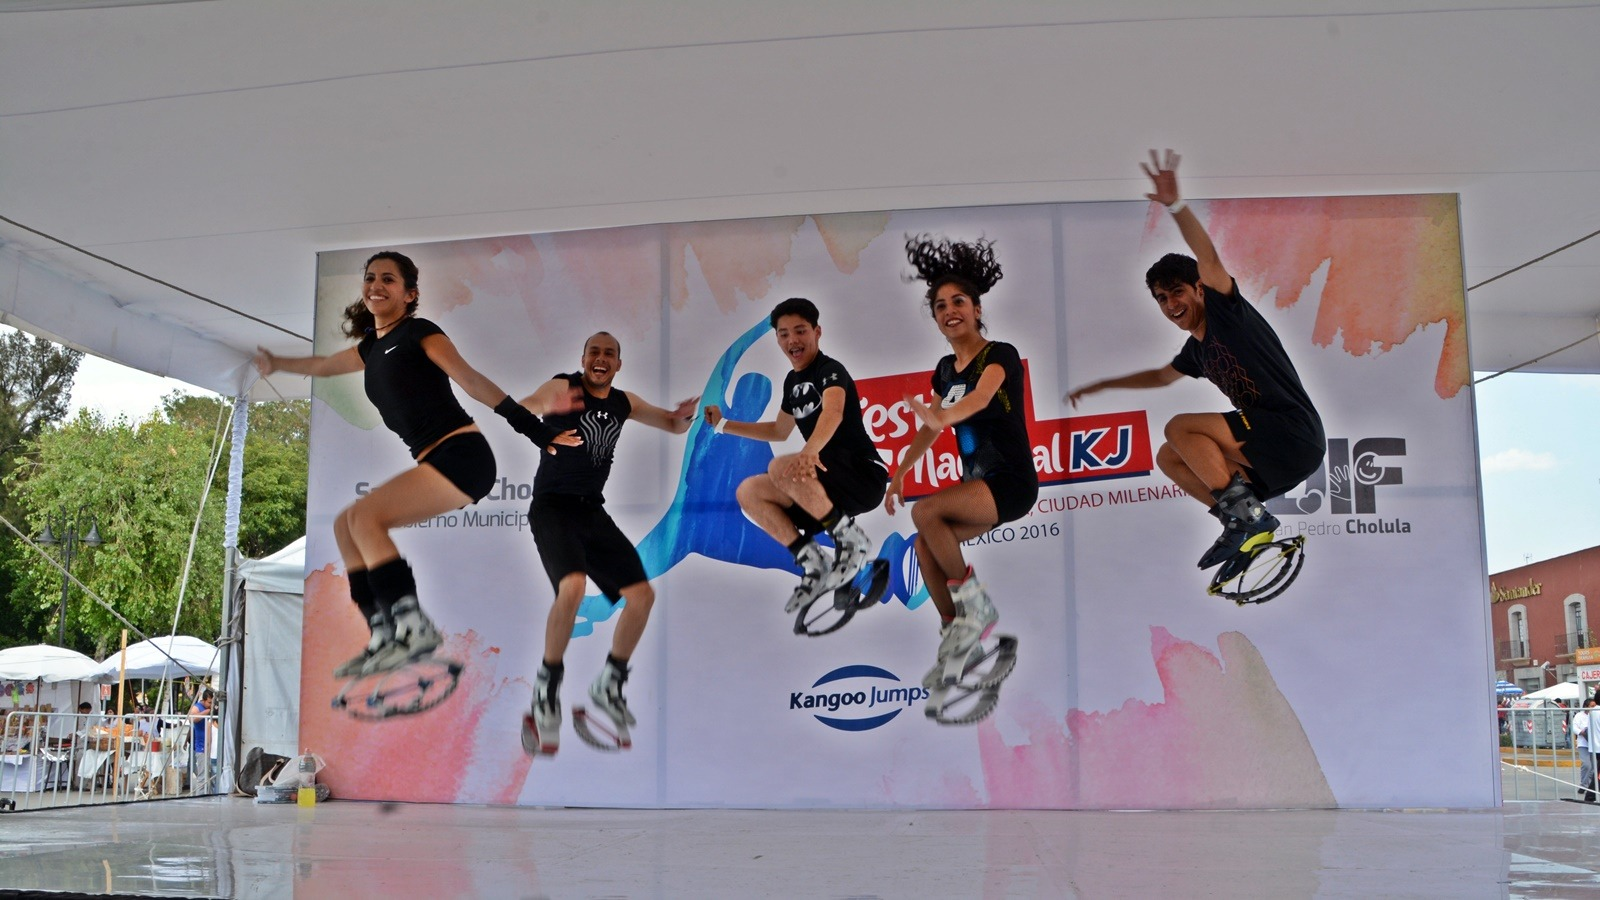 Kangoo Jumps